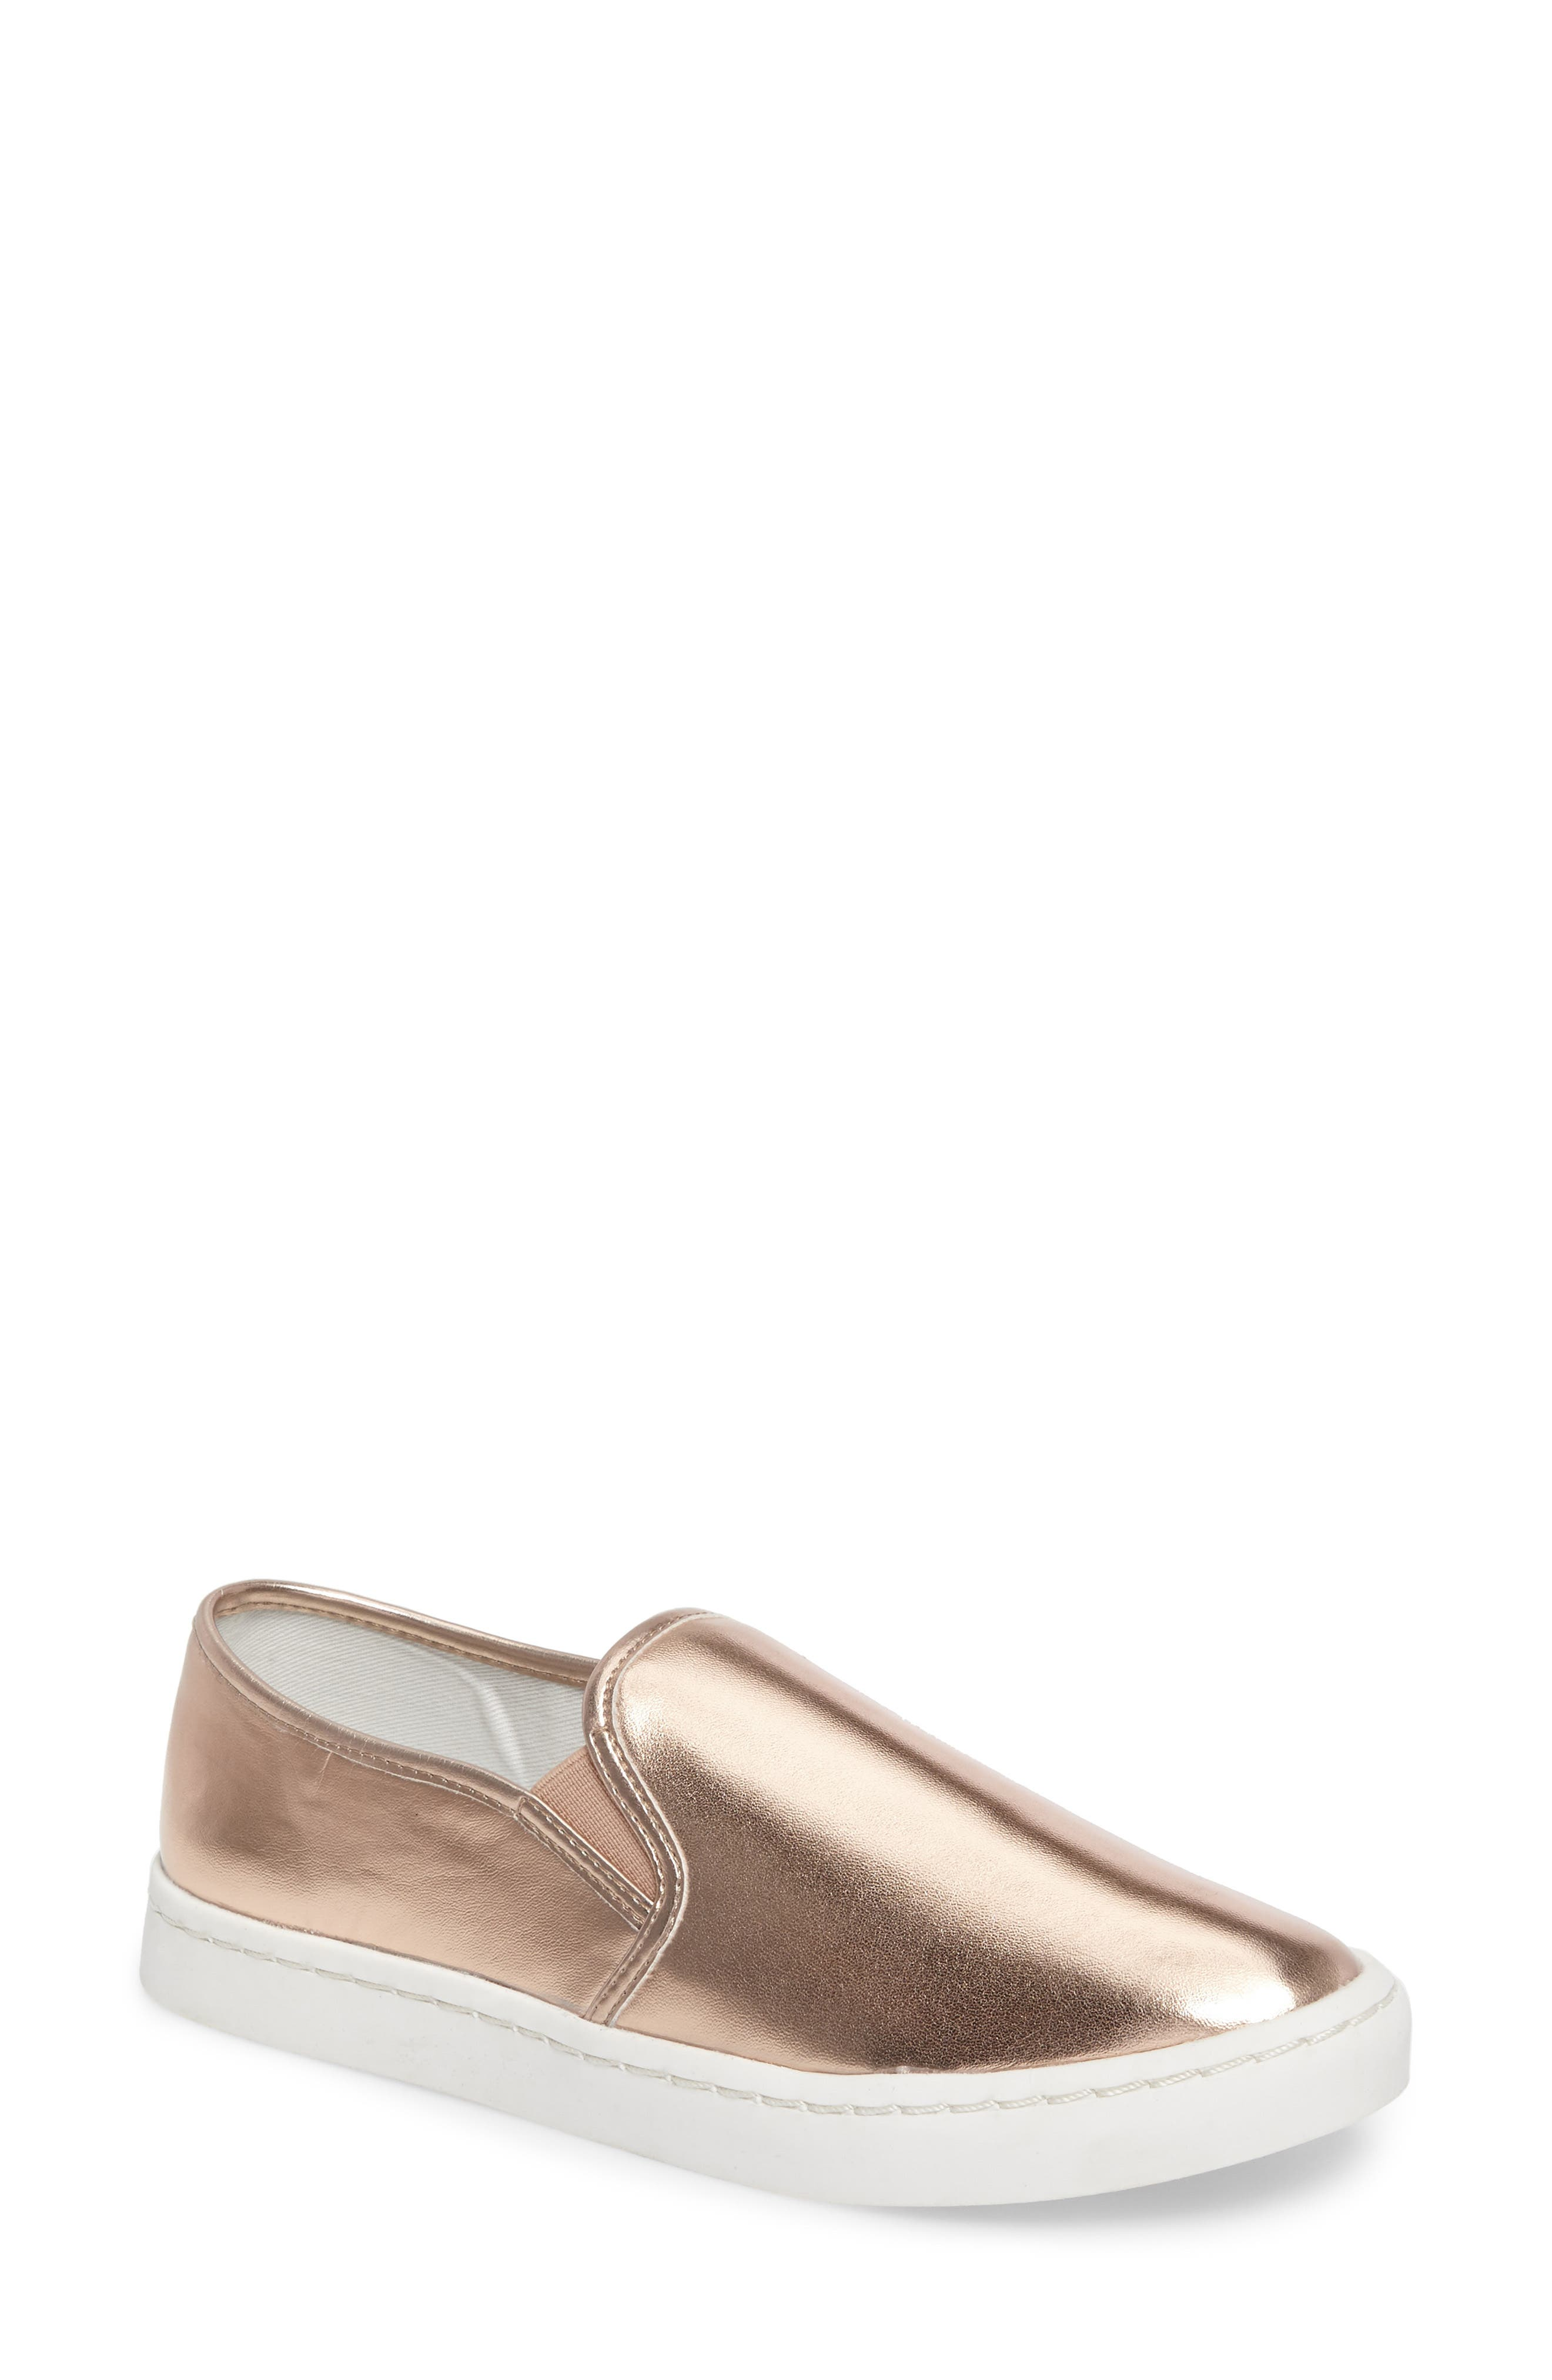 'Twiny' Slip-On Sneaker,                         Main,                         color, Rose Gold Faux Leather